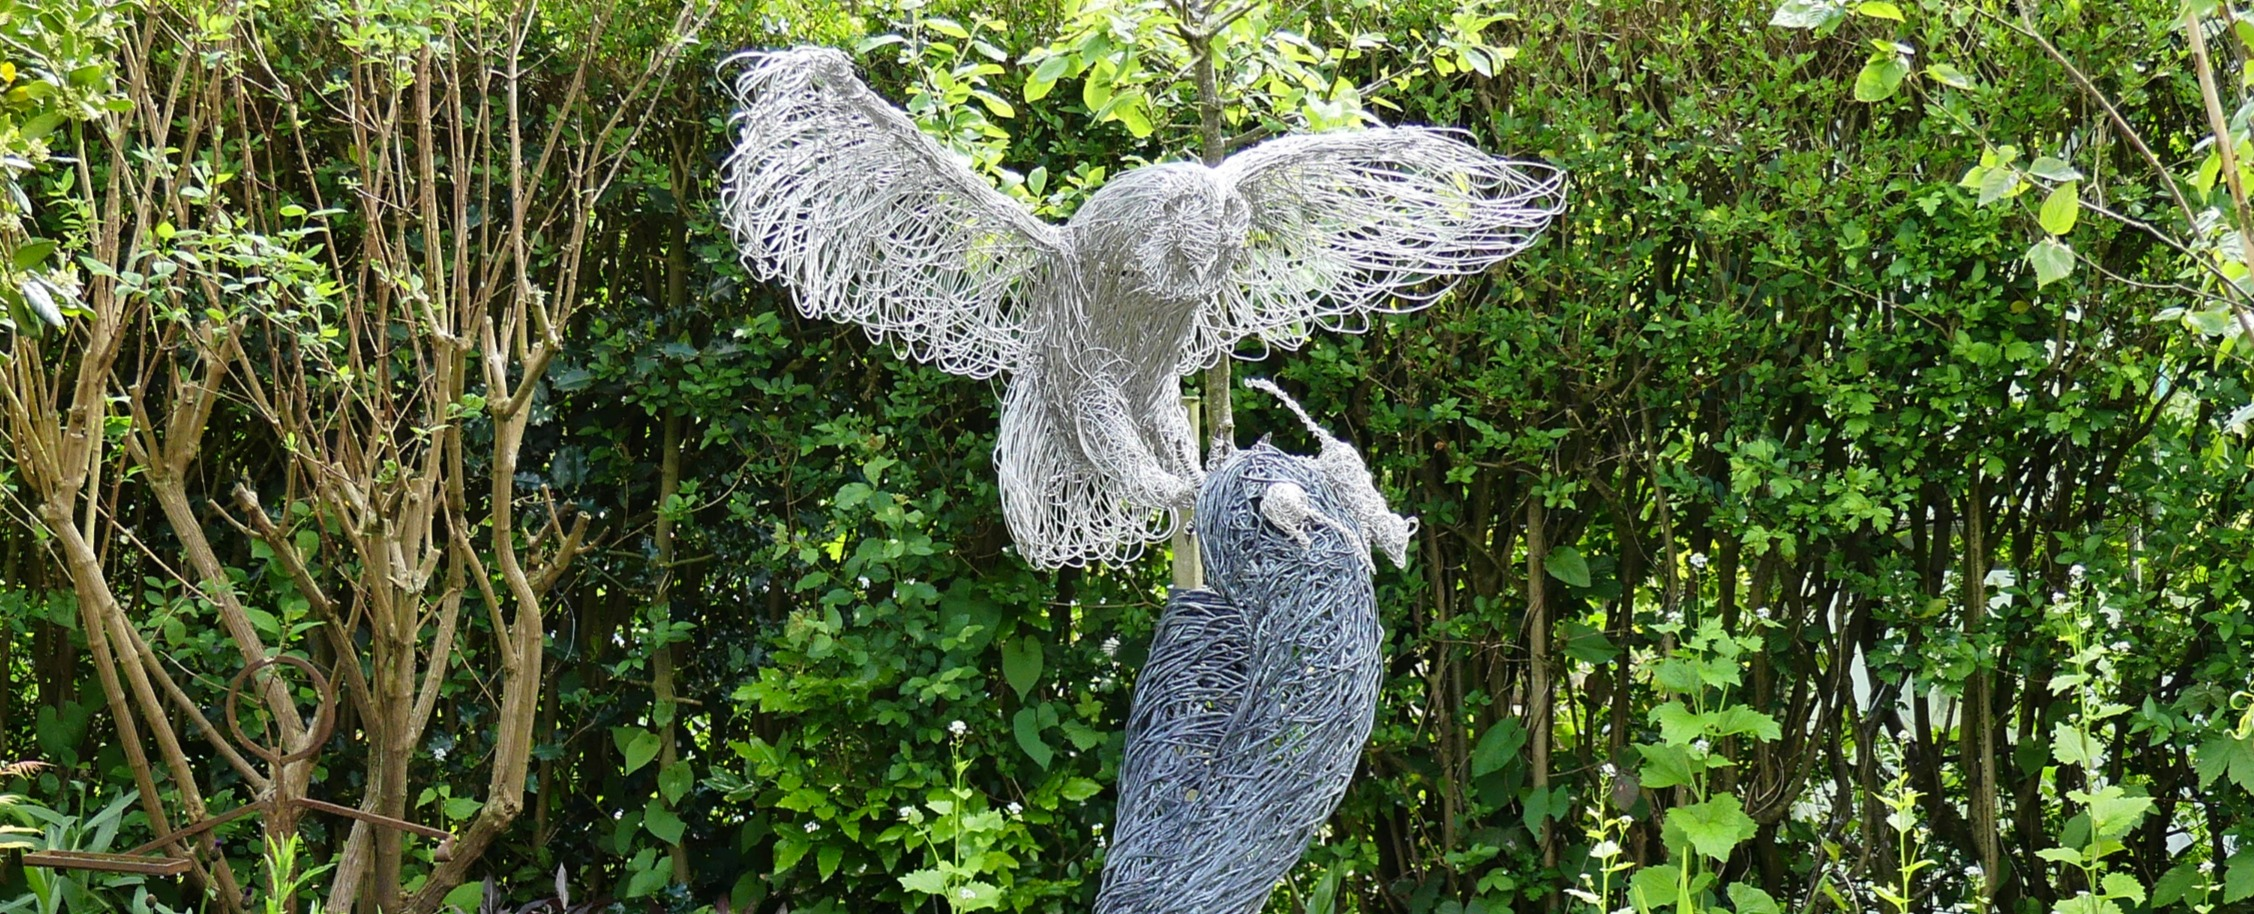 Stainless steel wire owl sculpture